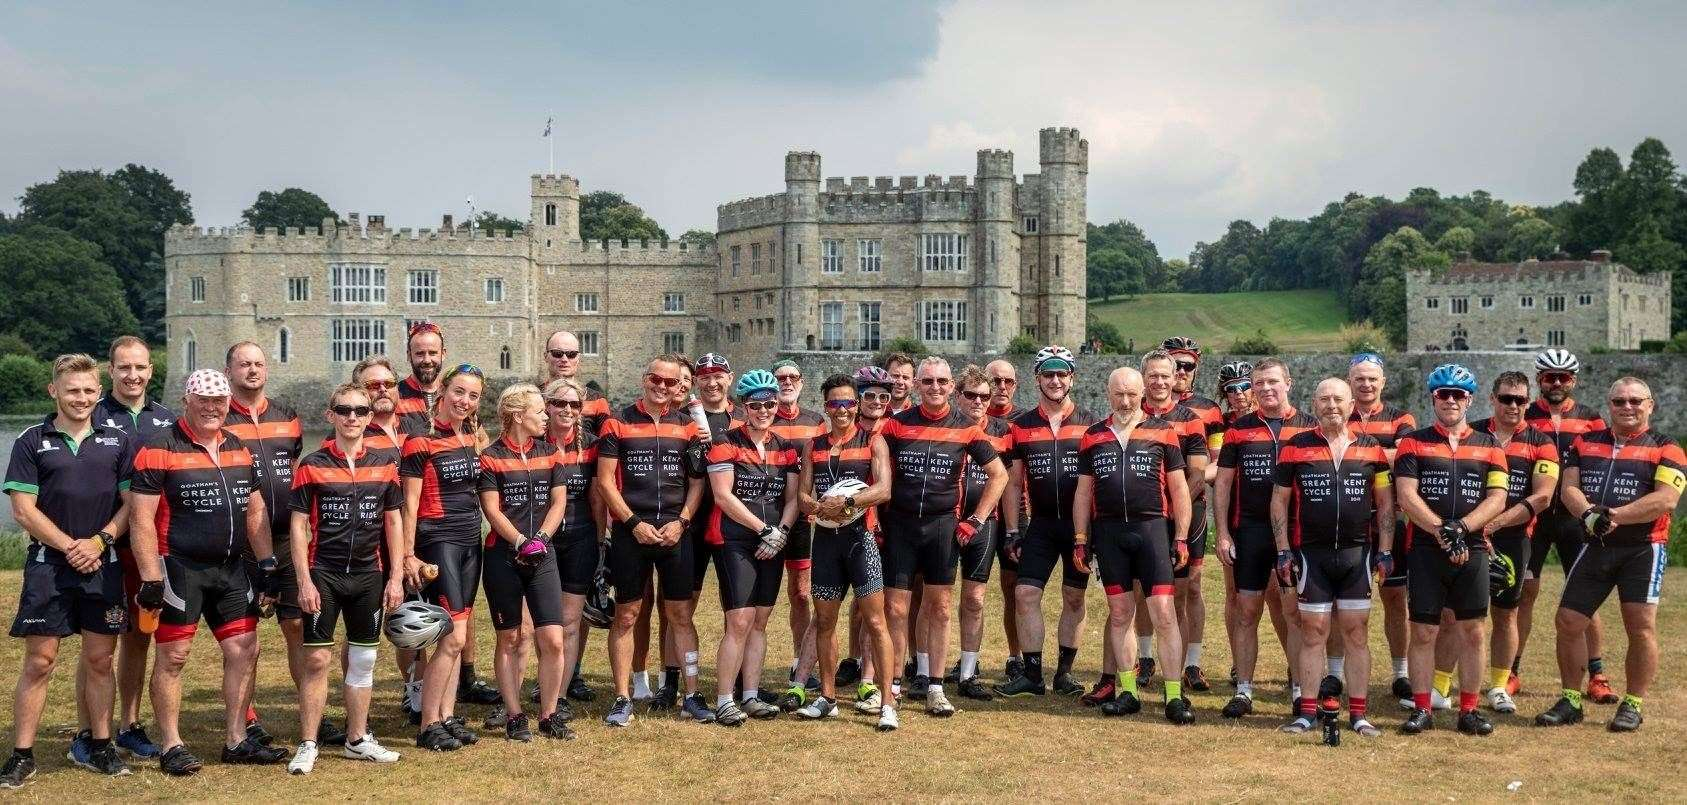 The Goatham's Great Kent Cycle Ride outside Leeds Castle. This year, it will take place from Friday, July 3 to Sunday, July 5.